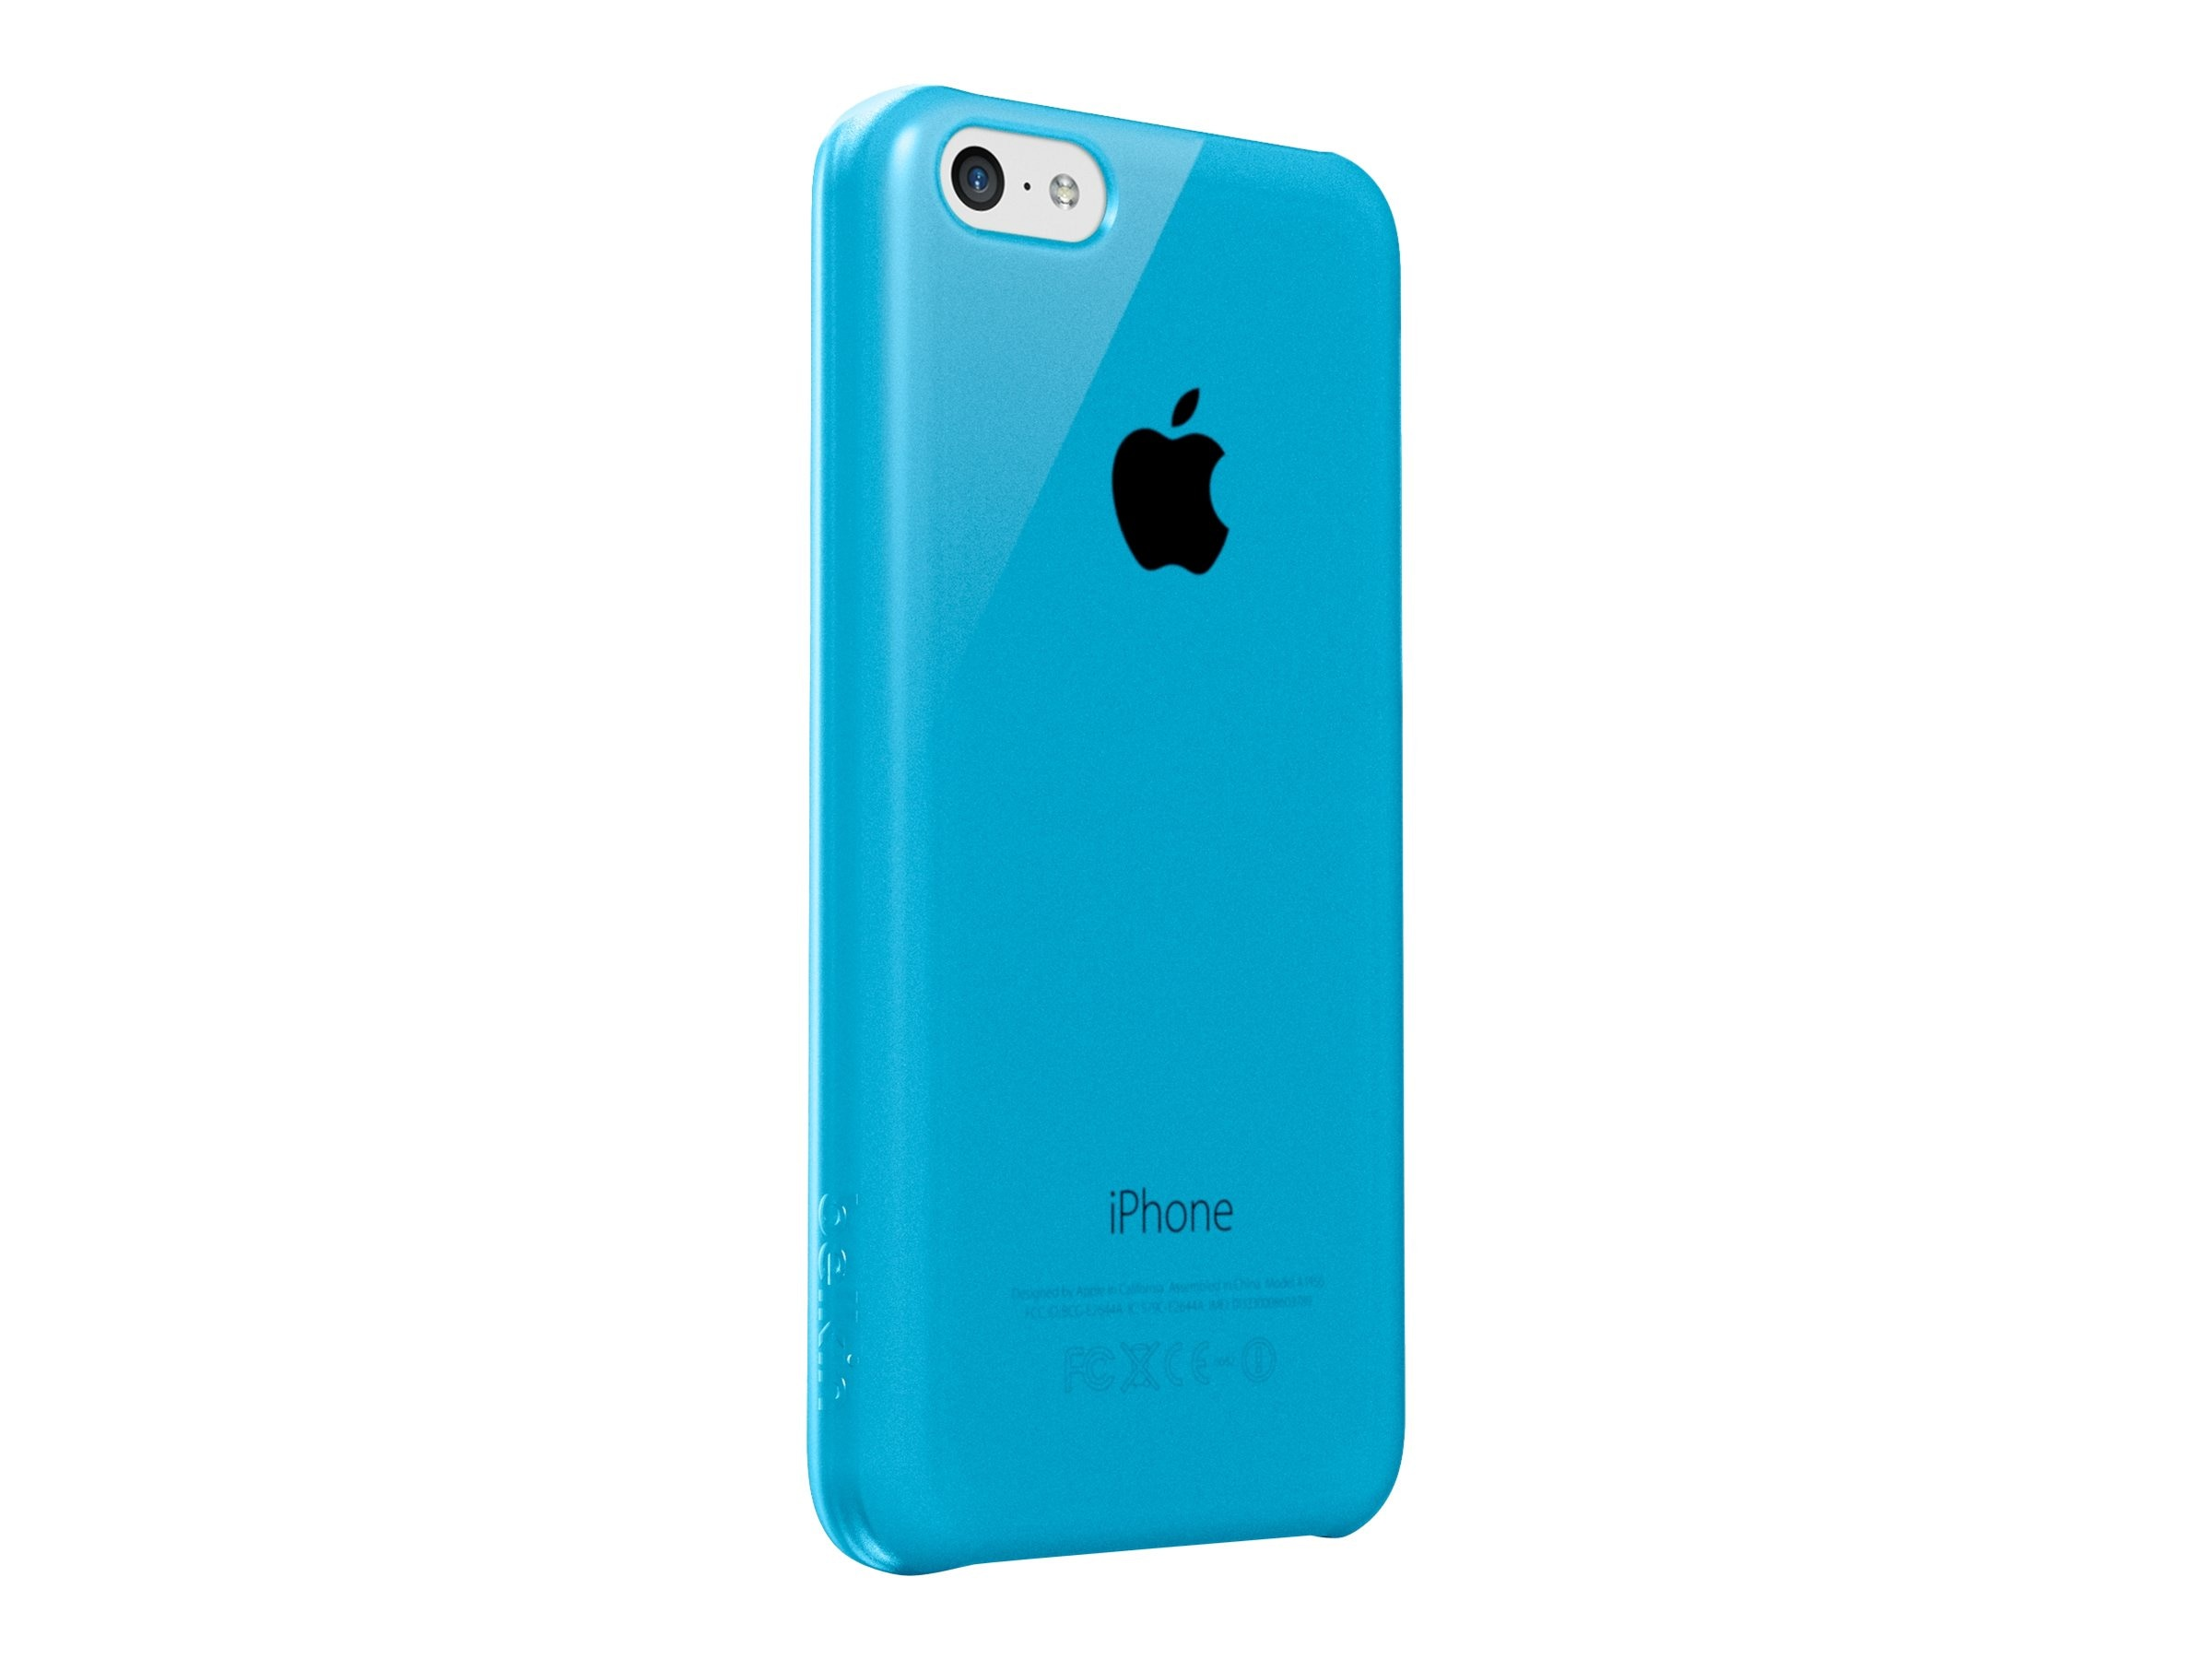 Belkin Shield Sheer Matte for iPhone 5C, Topaz, F8W375BTC03, 16282292, Carrying Cases - Phones/PDAs